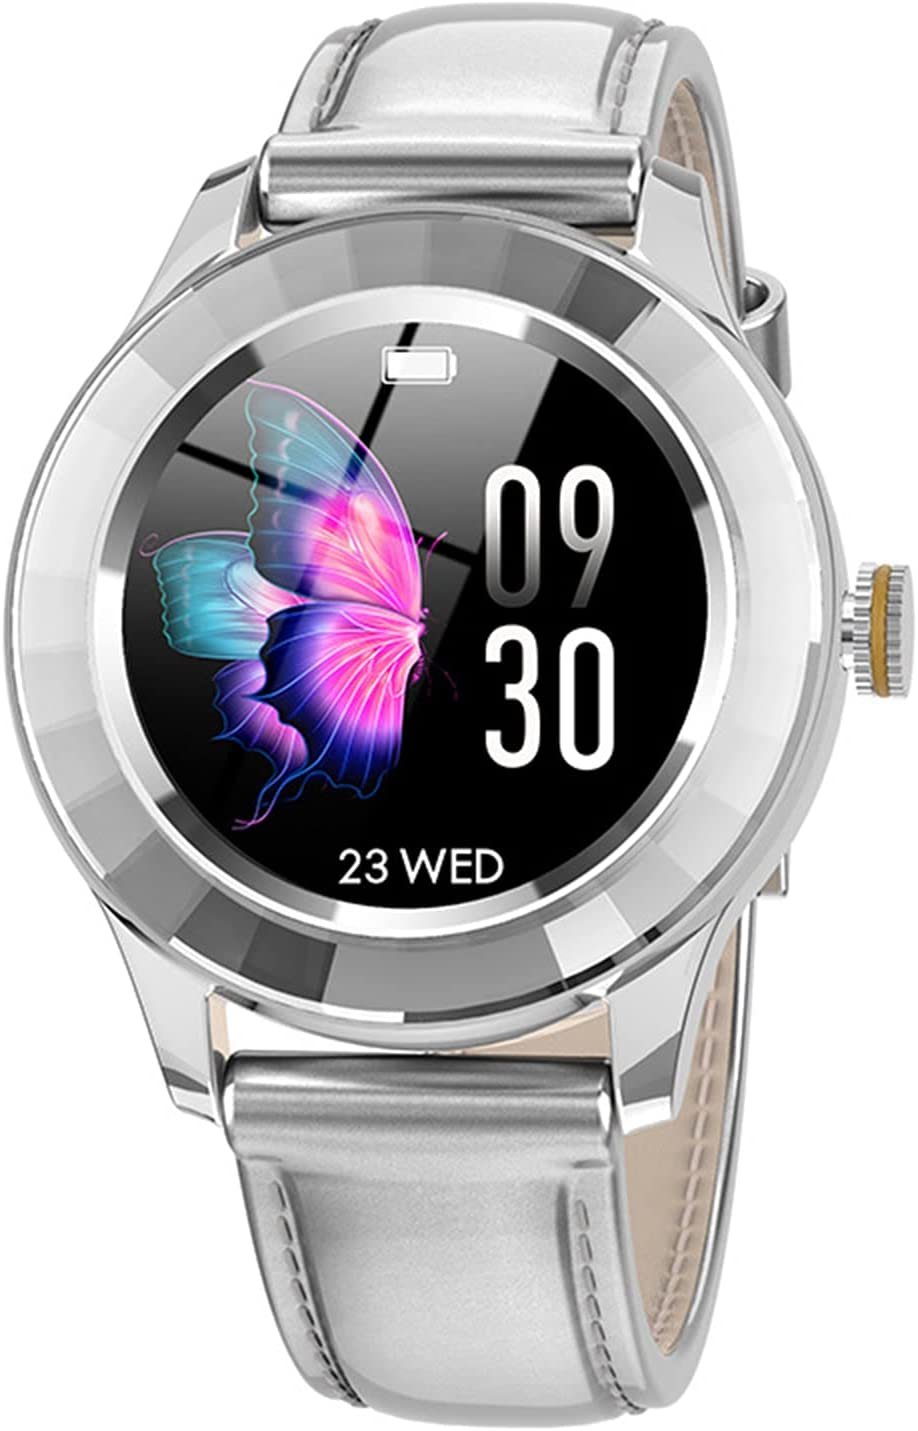 HBOY Smart Watch Heart Rate Measurement Pressure Super special price Blood Music P Ranking TOP13